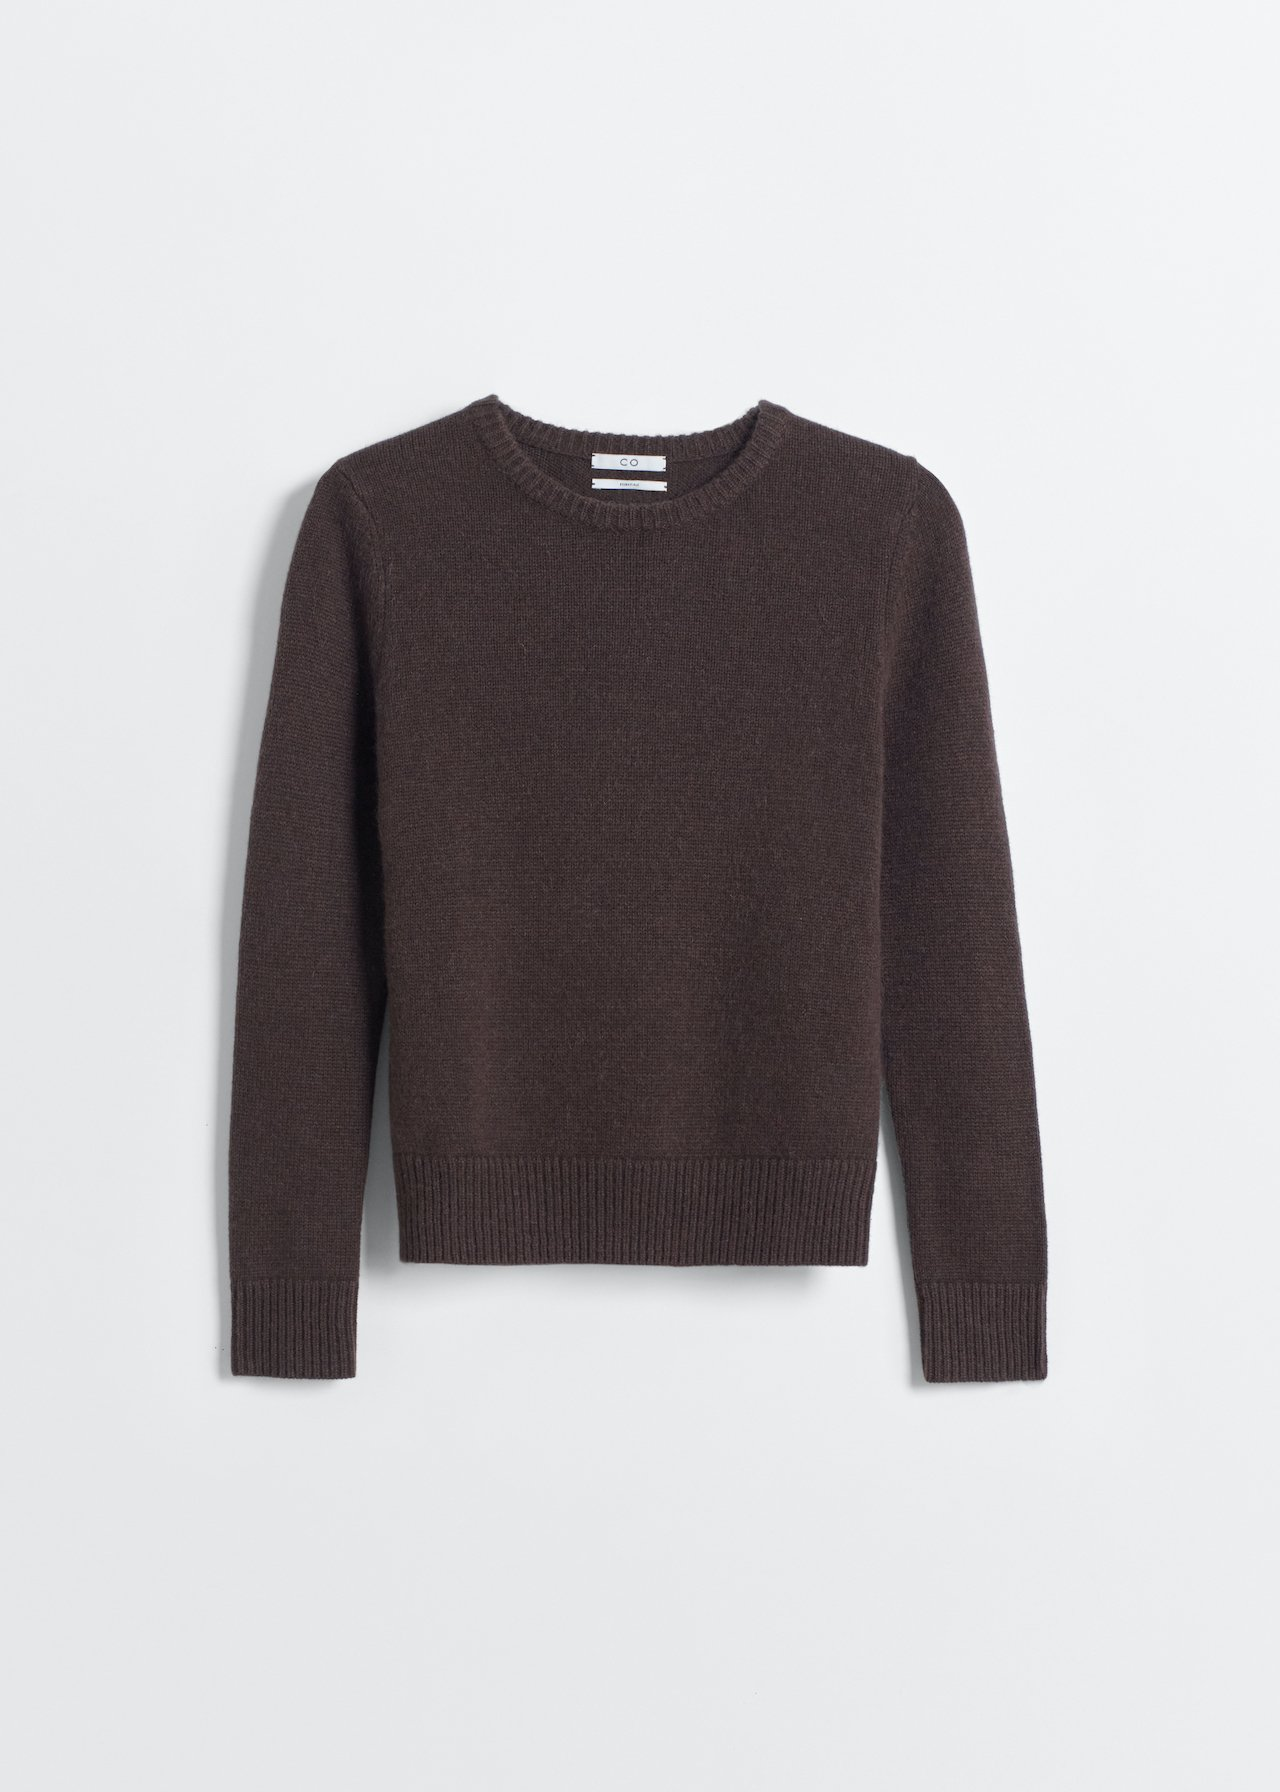 Cashmere Crew Neck Sweater - Light Grey in Brown by Co Collections